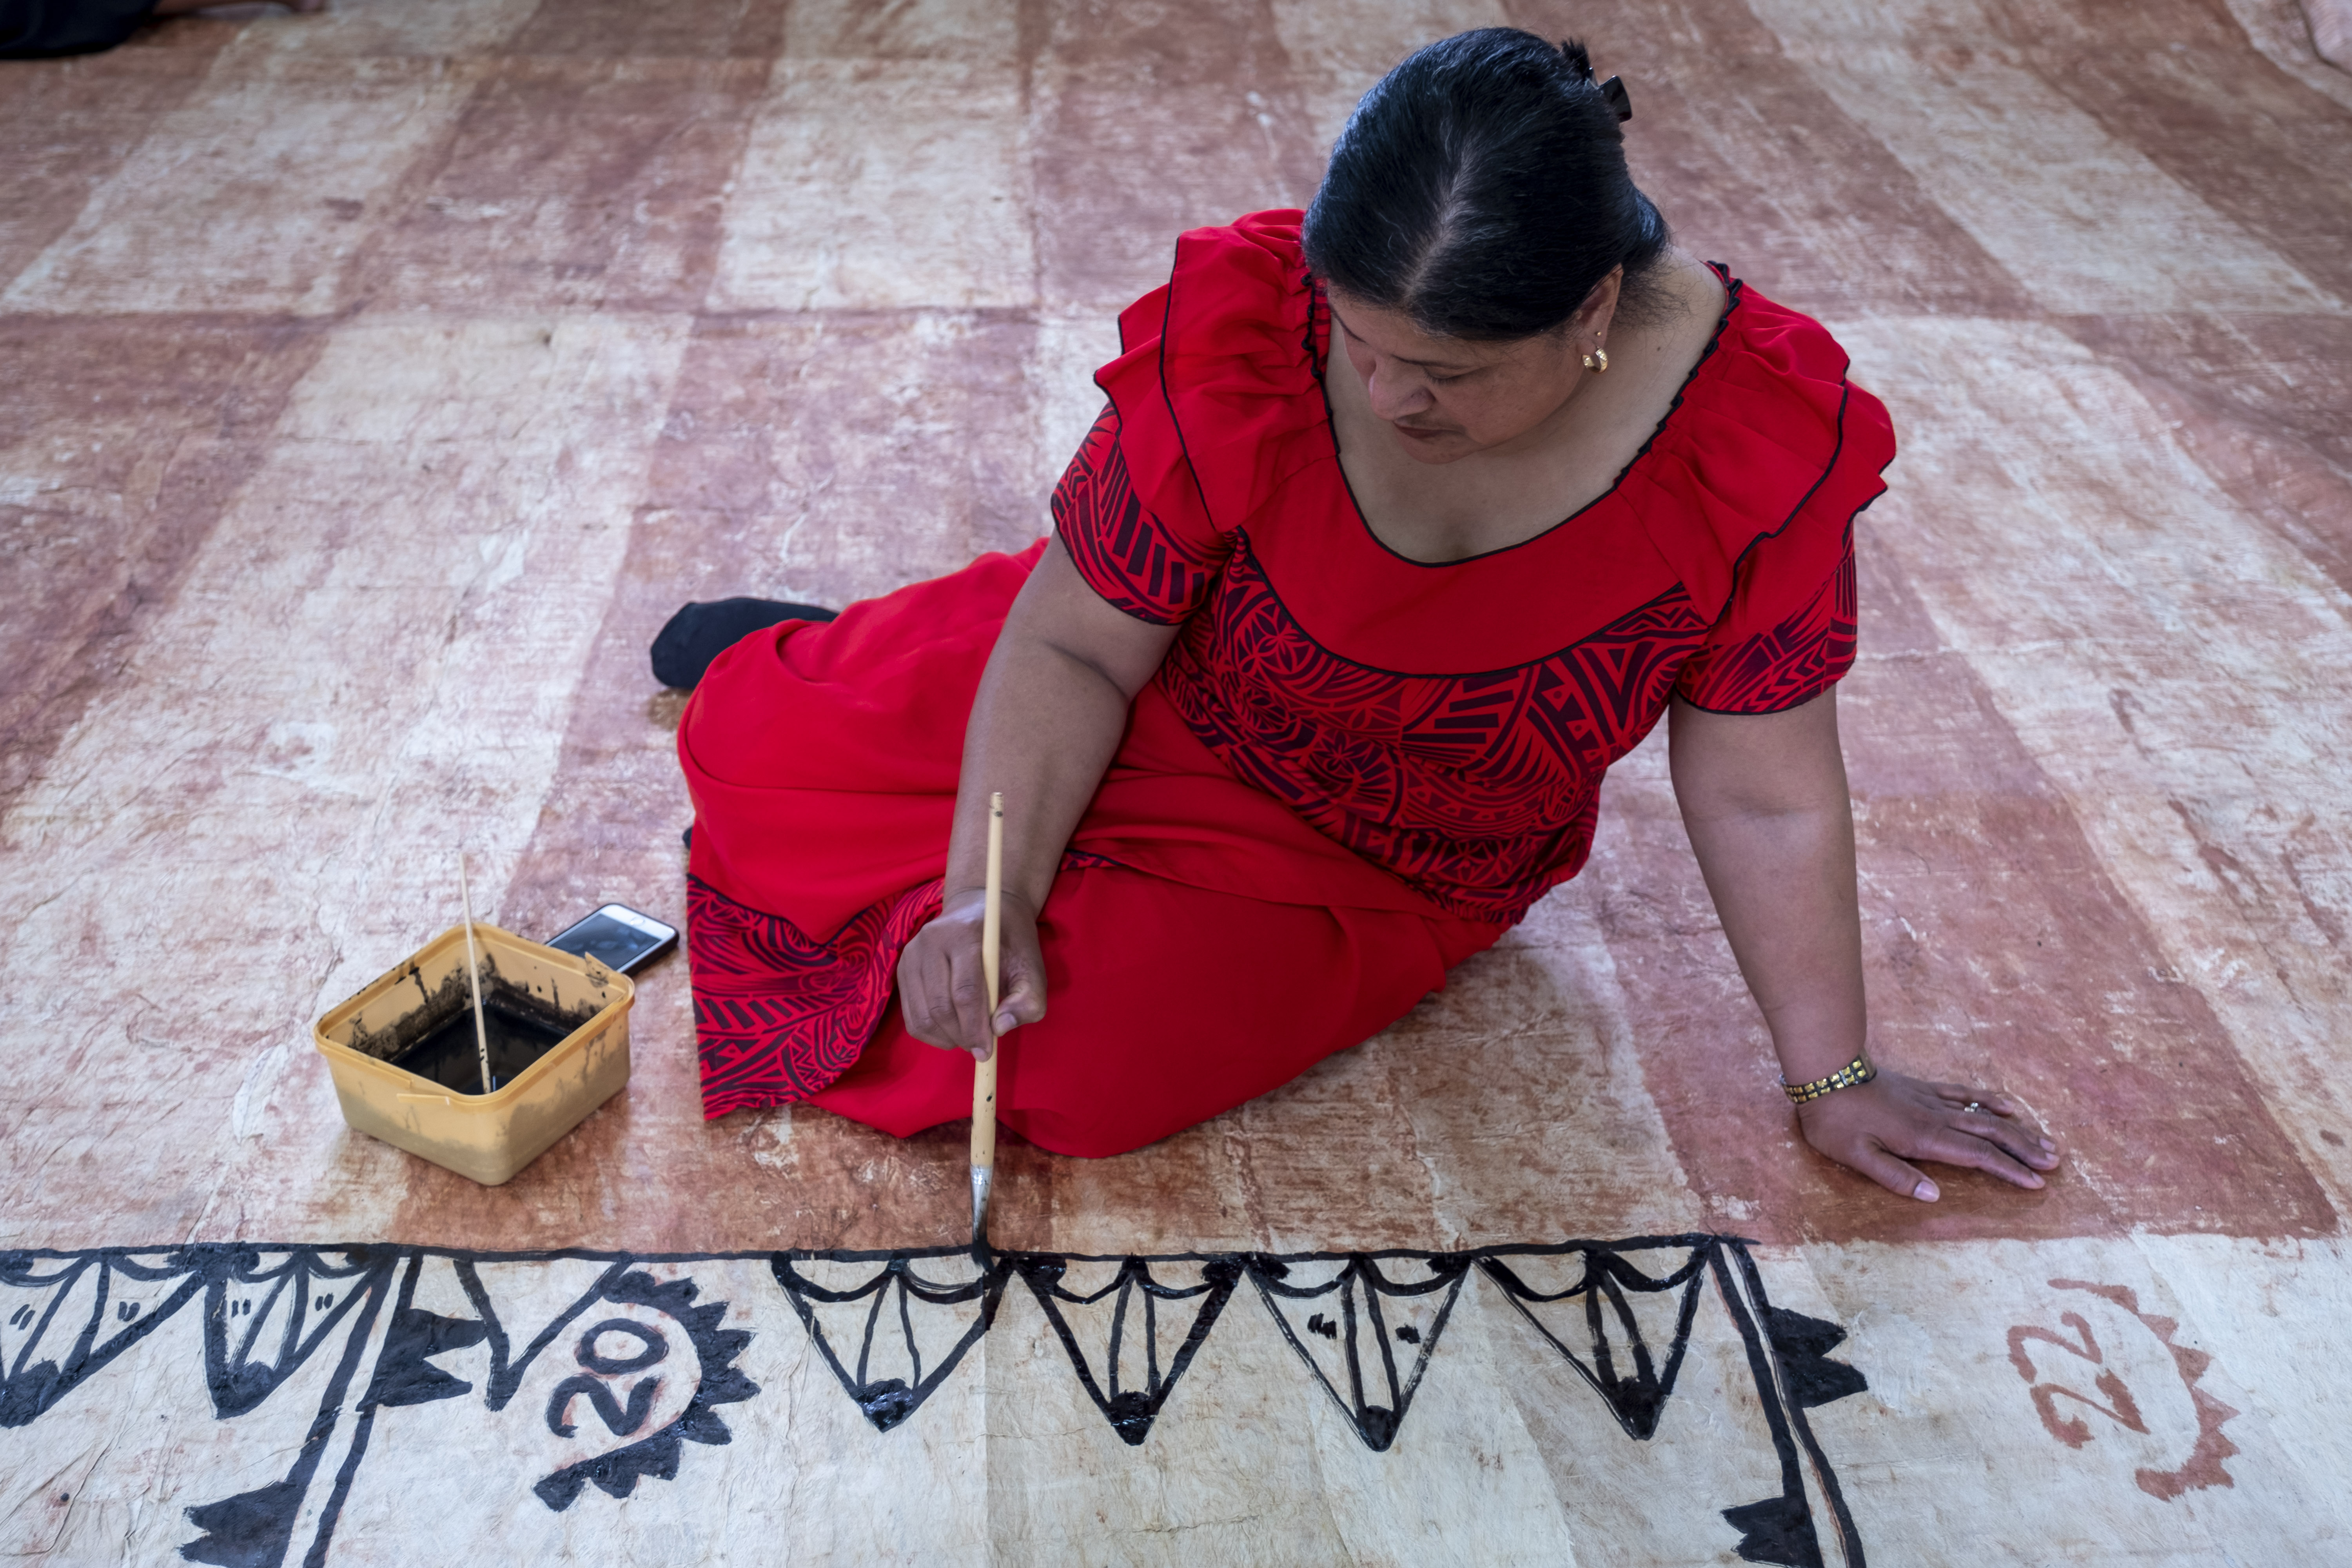 A woman in a red dress painting black ink on a tapa cloth on the floor